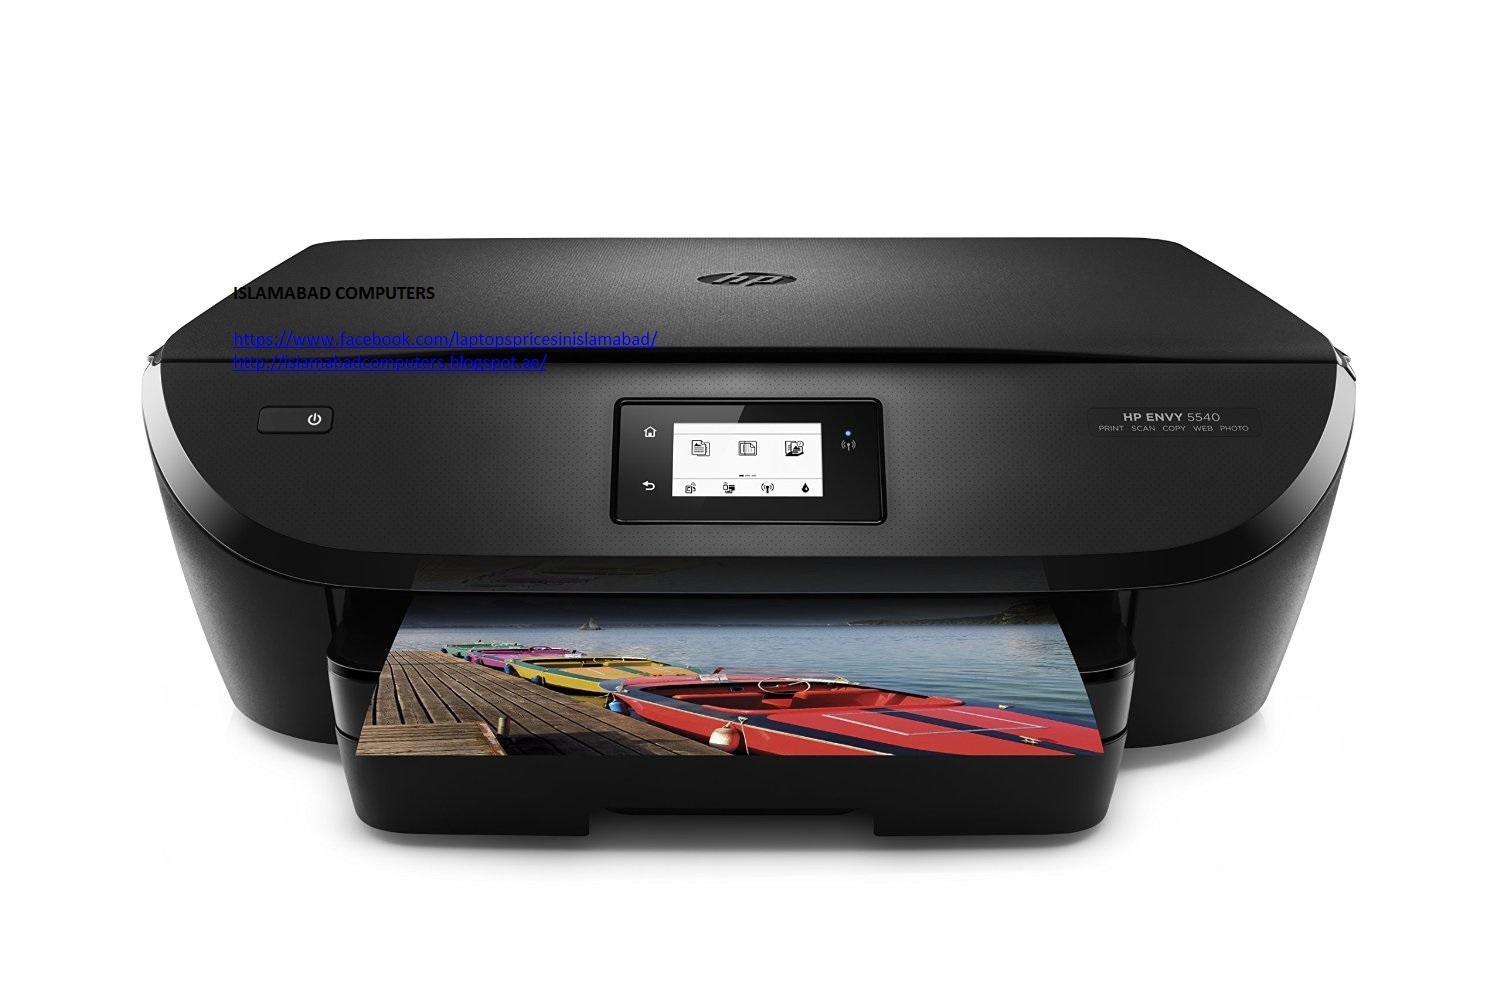 Siqarah IT Solutions : HP ENVY 5540 All-in-One Printer Price